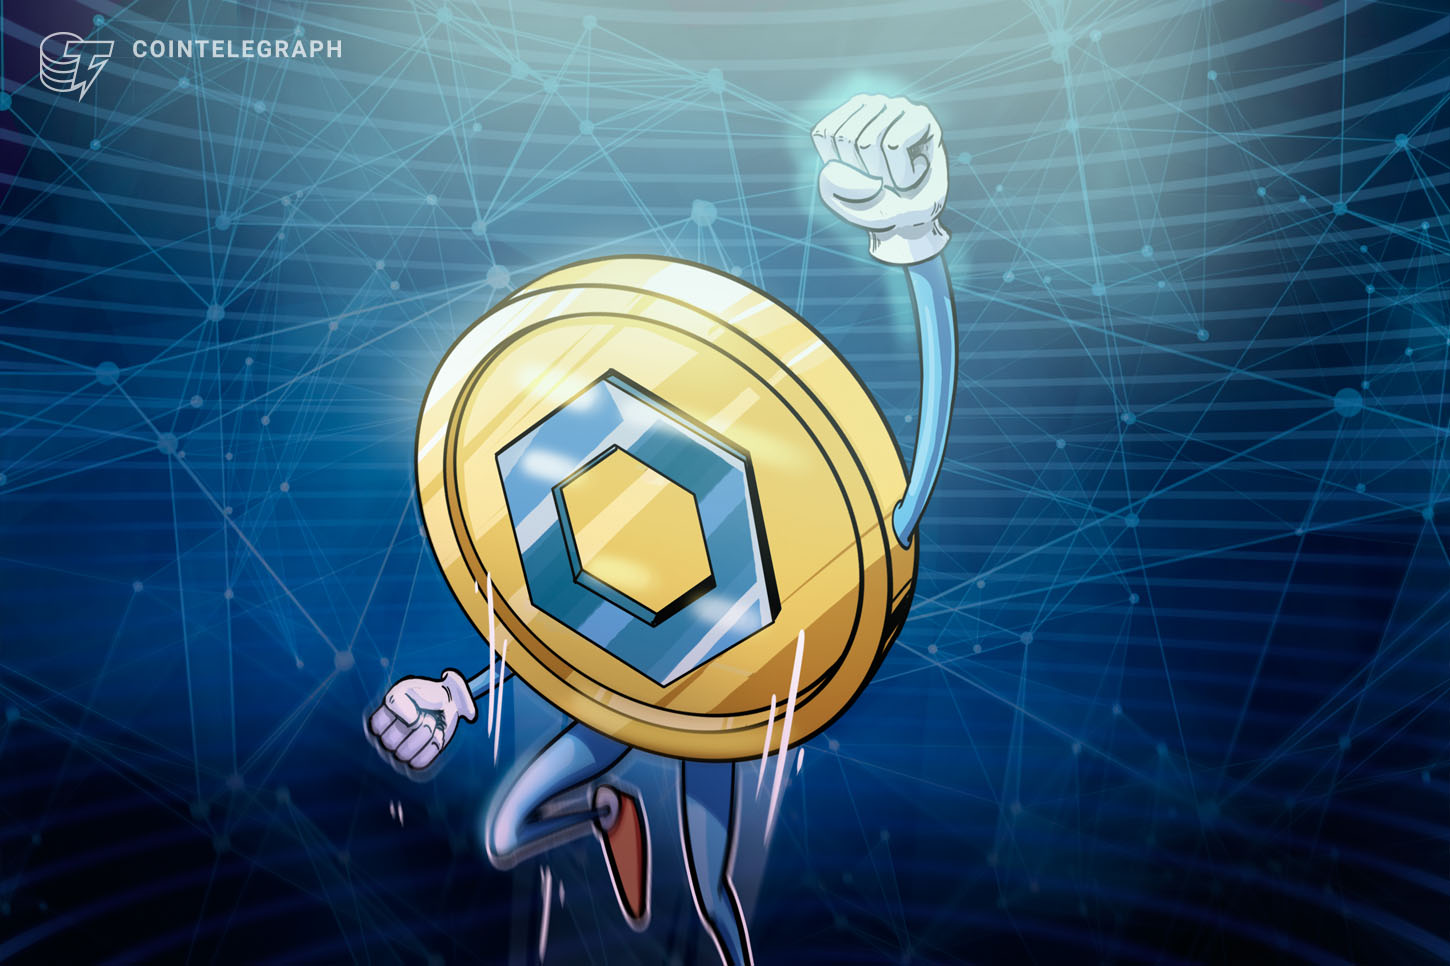 Chainlink surpasses Bitcoin Cash making LINK the 8th largest cryptocurrency